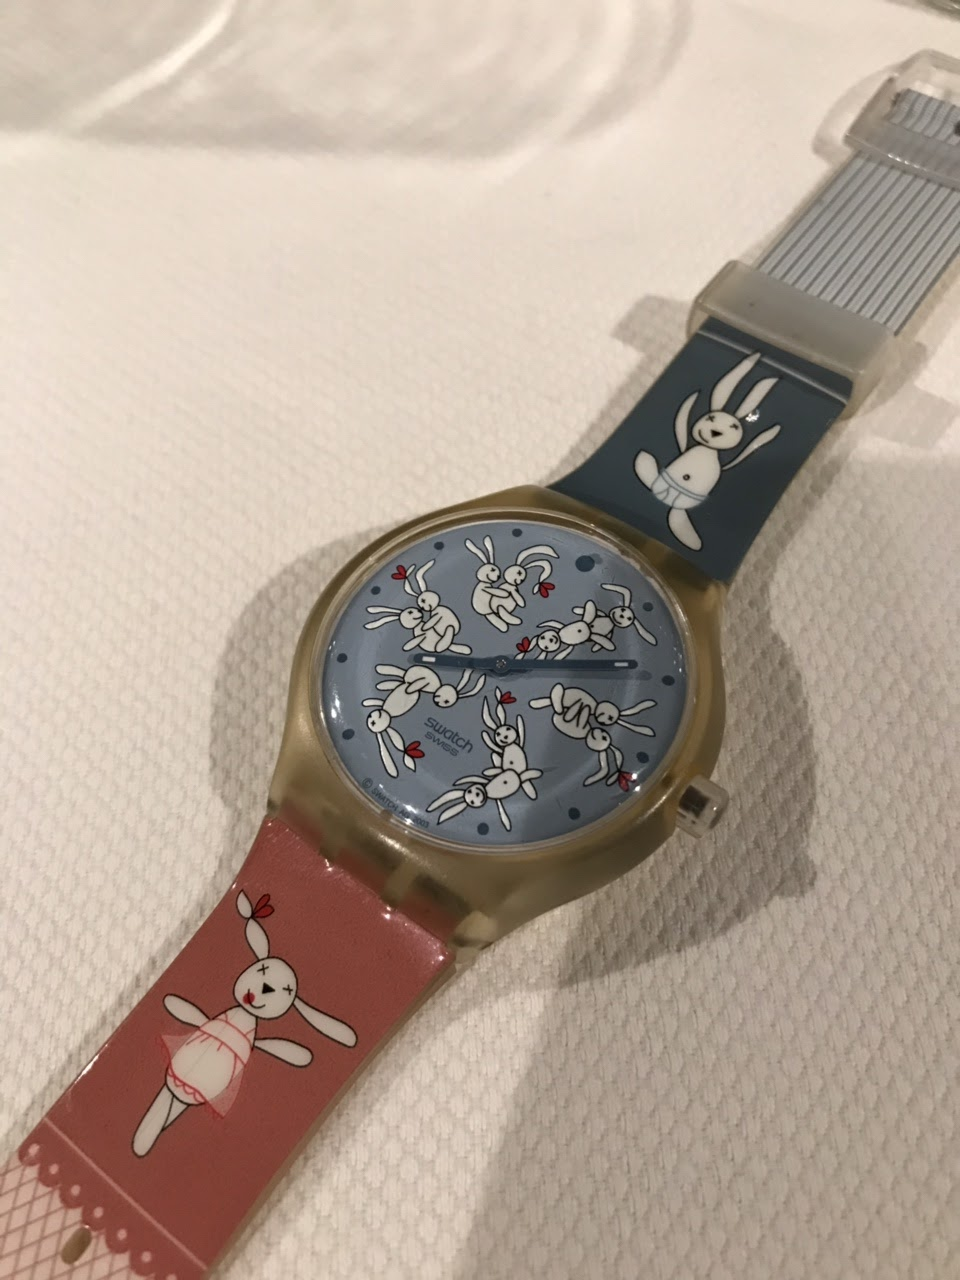 9517b8f7a7a6 Horological Meandering - Last night I had the pleasure of playing ...